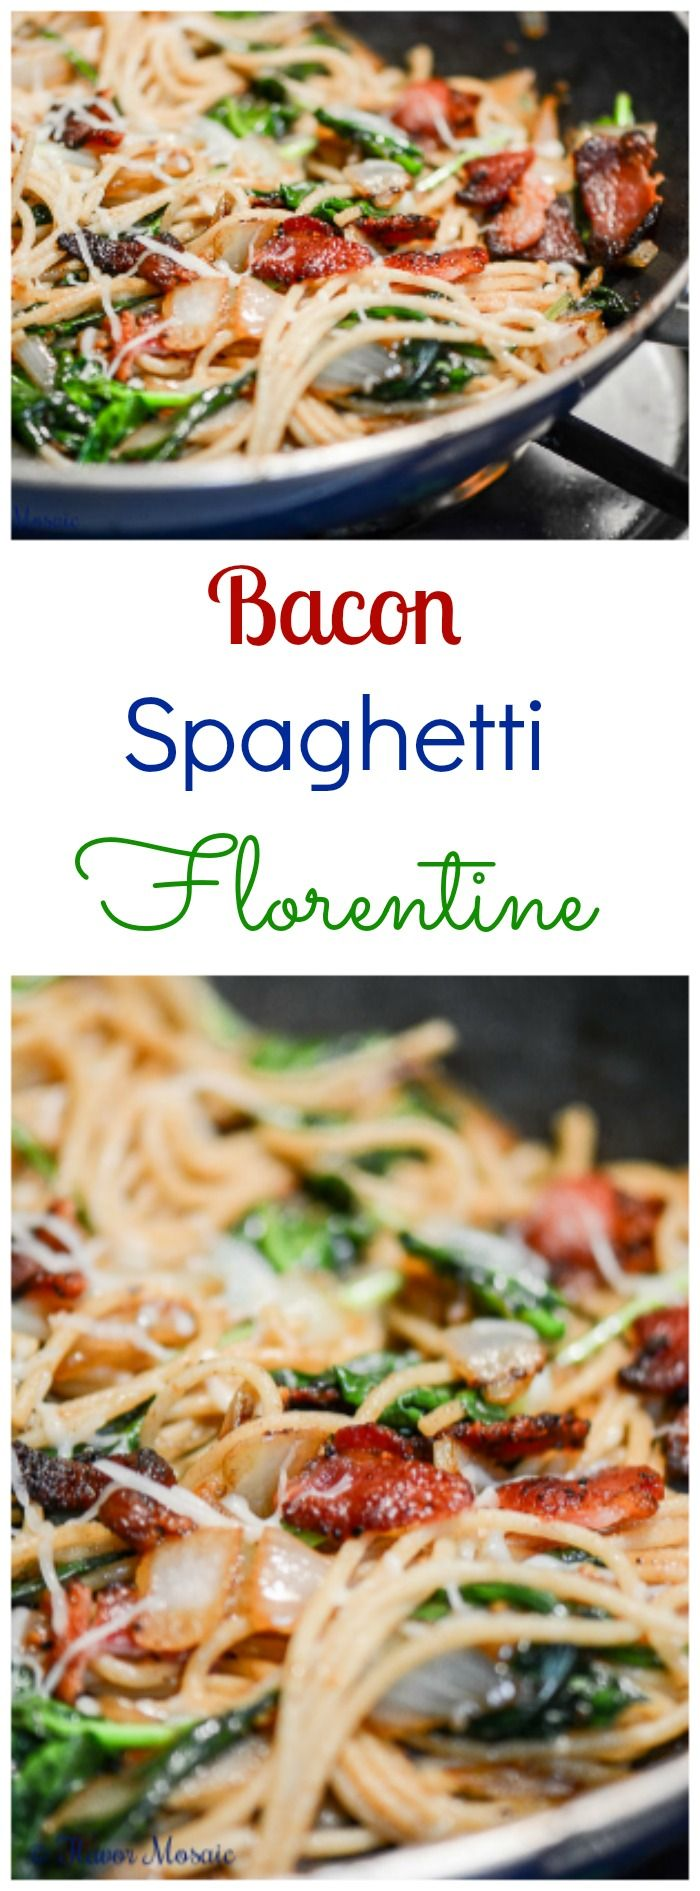 Bacon Spaghetti Florentine is a quick and easy pasta dinner made with spaghetti, bacon, spinach, onions, garlic, and Italian cheeses, including mozzarella, parmesan, and asiago.